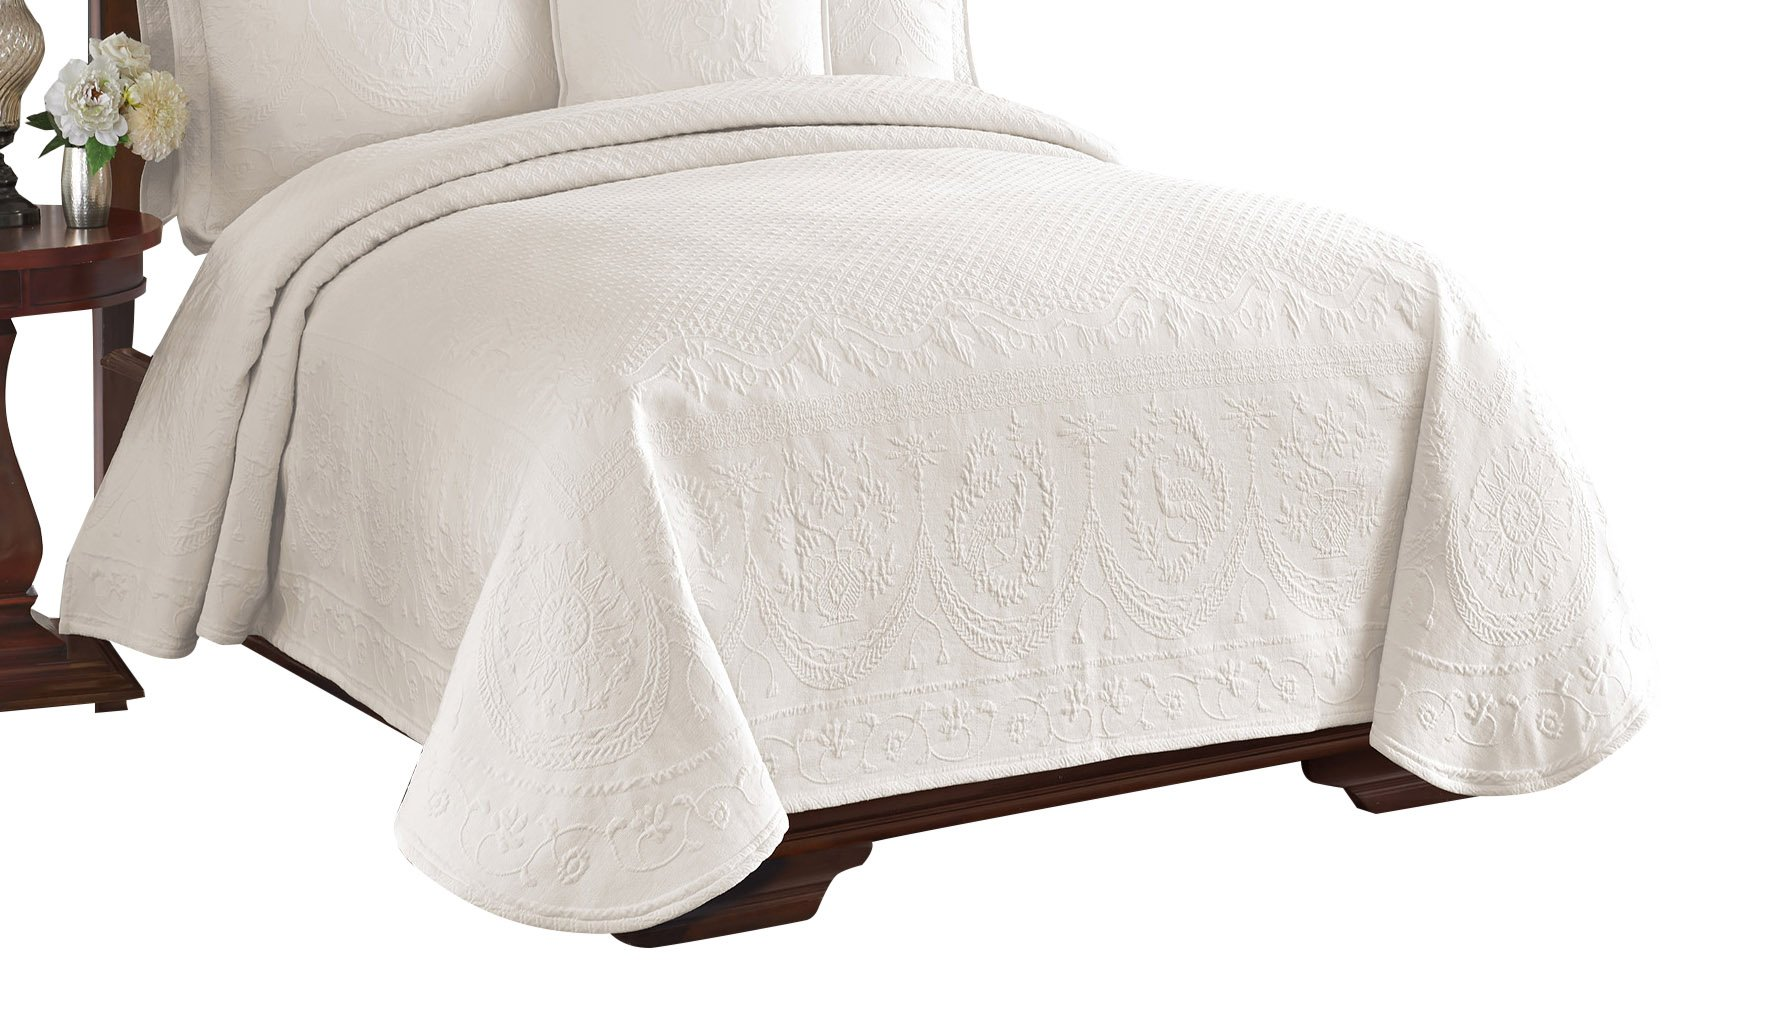 Historic Charleston 13991BEDDQUEIVY King Charles Matelasse 96-Inch by 90-Inch Queen Coverlet, Ivory